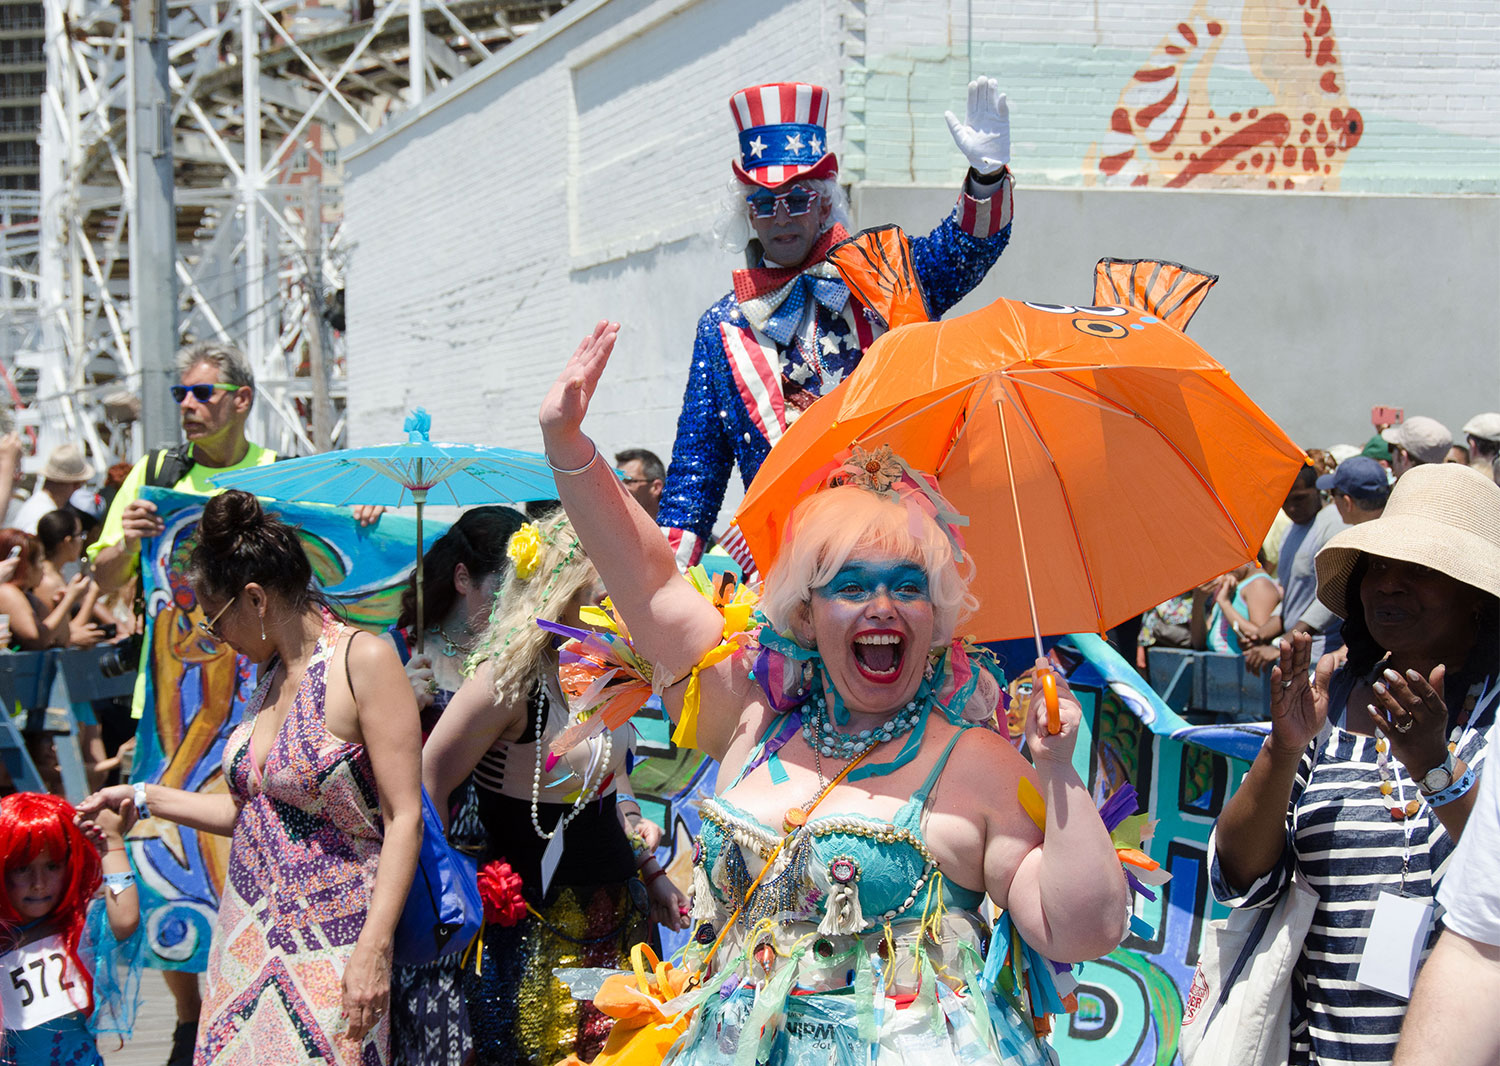 Mermaid Parade On The Coney Island Boardwalk 2016